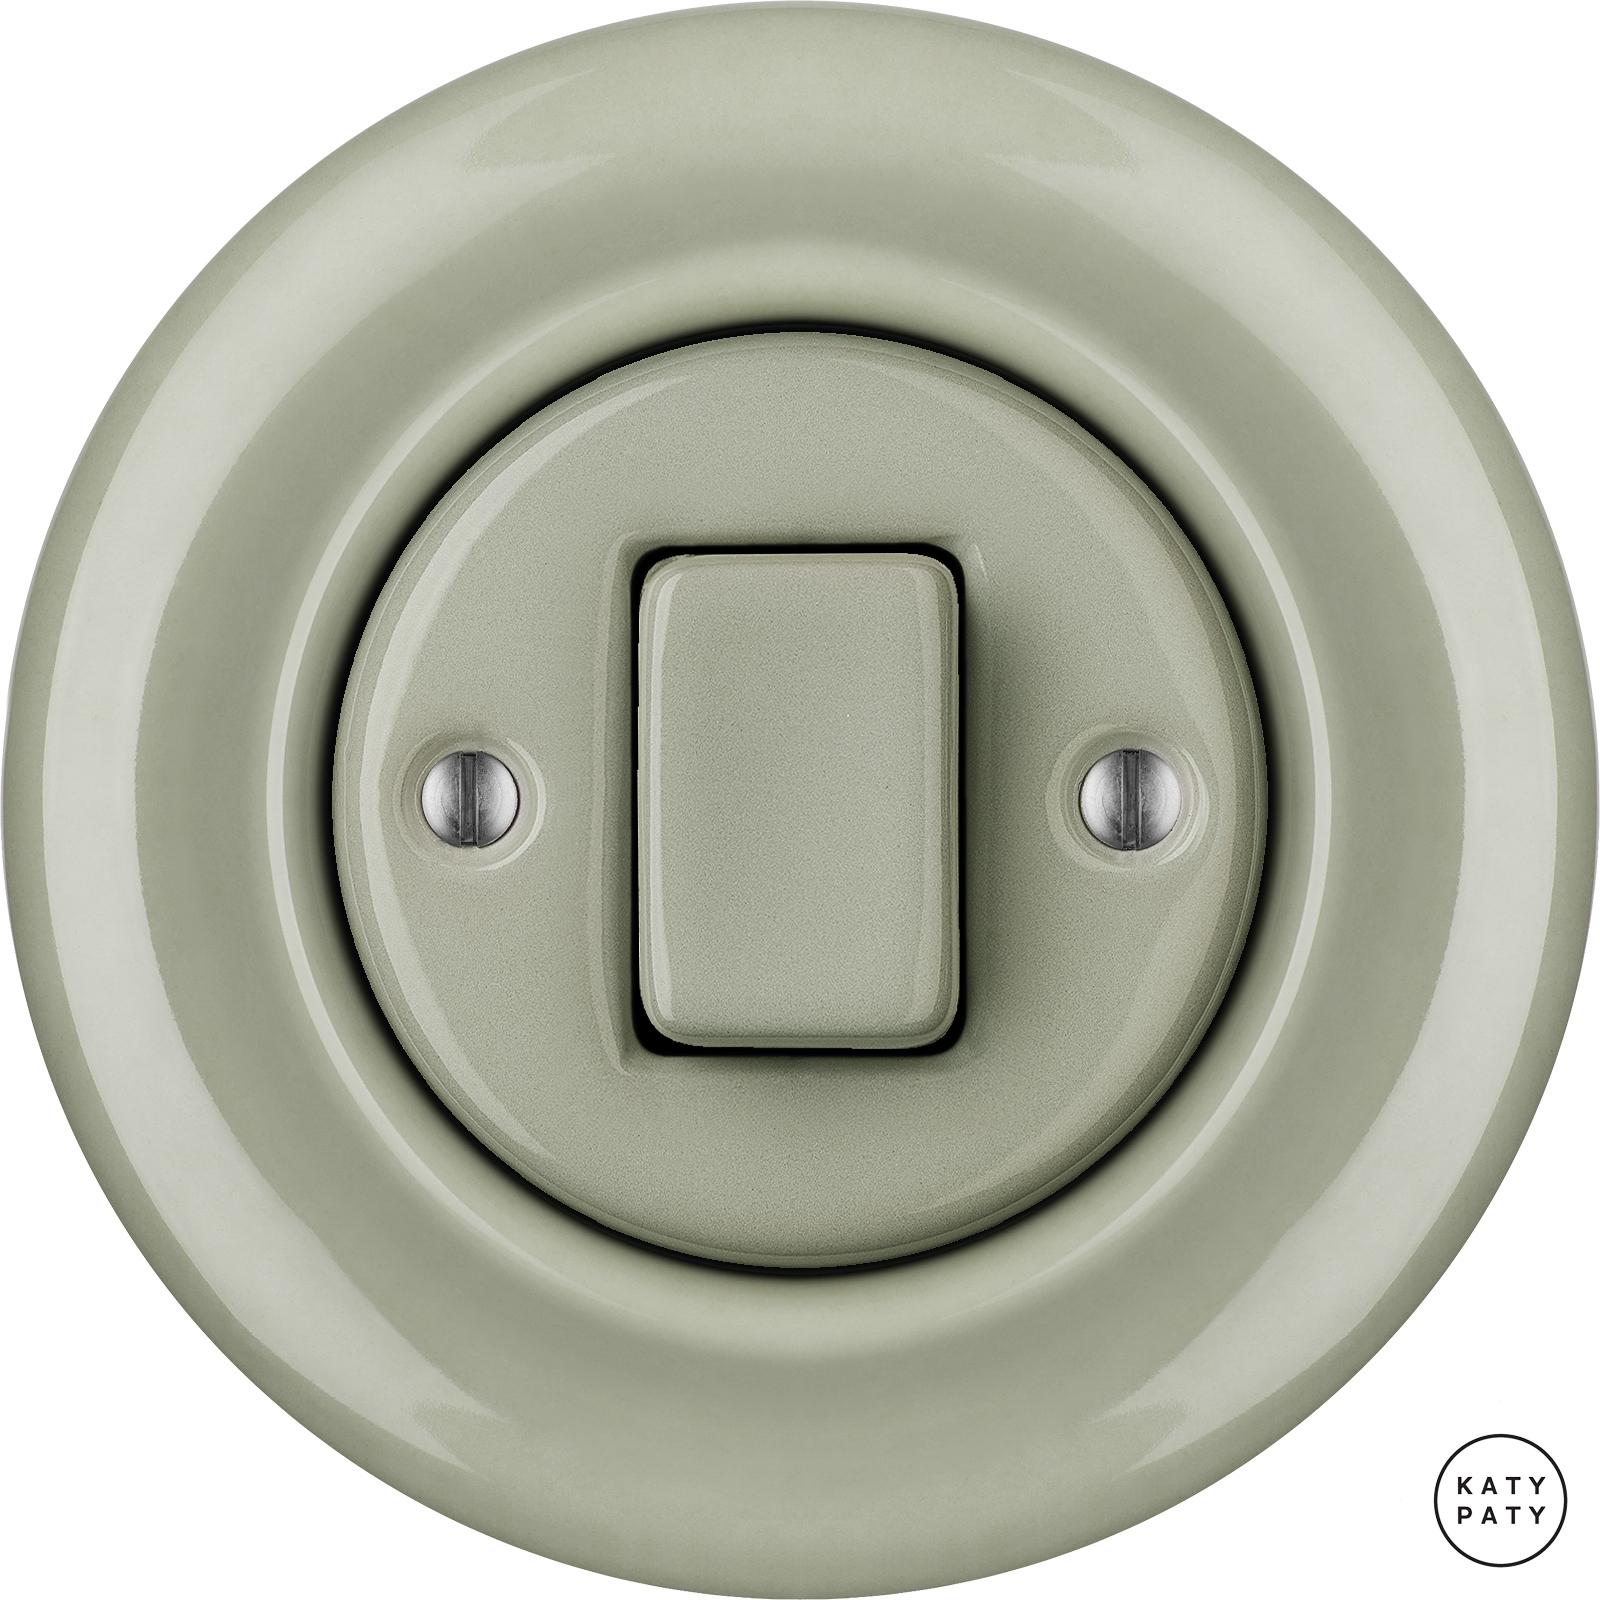 Porcelain switches - a 1 key - FAT ()  - CHLORA | Katy Paty